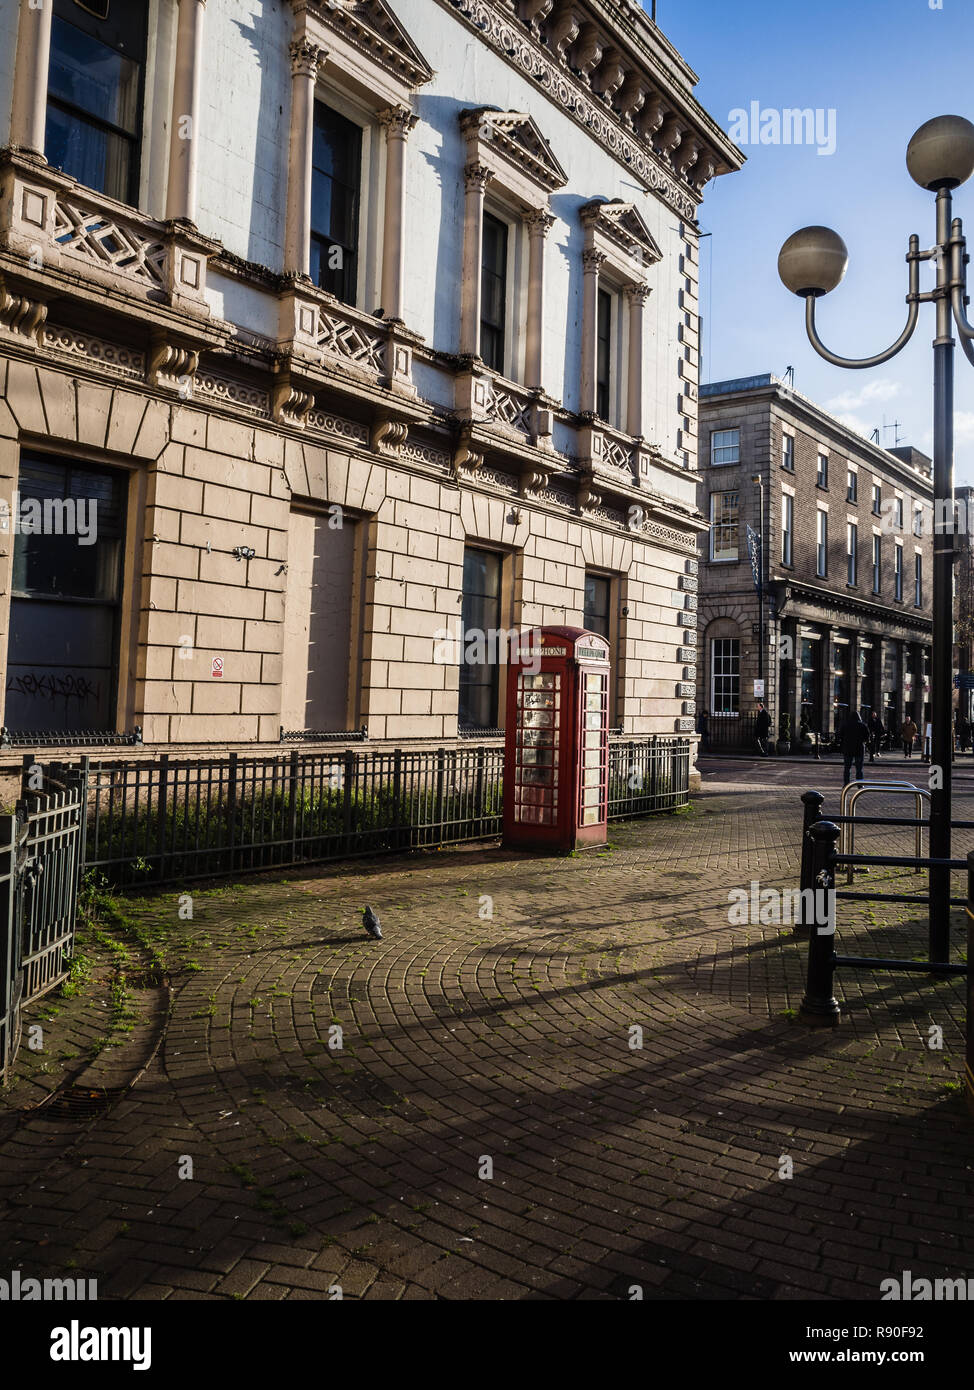 Delapidated historical building in Belfast with iconic red telephone box - Stock Image